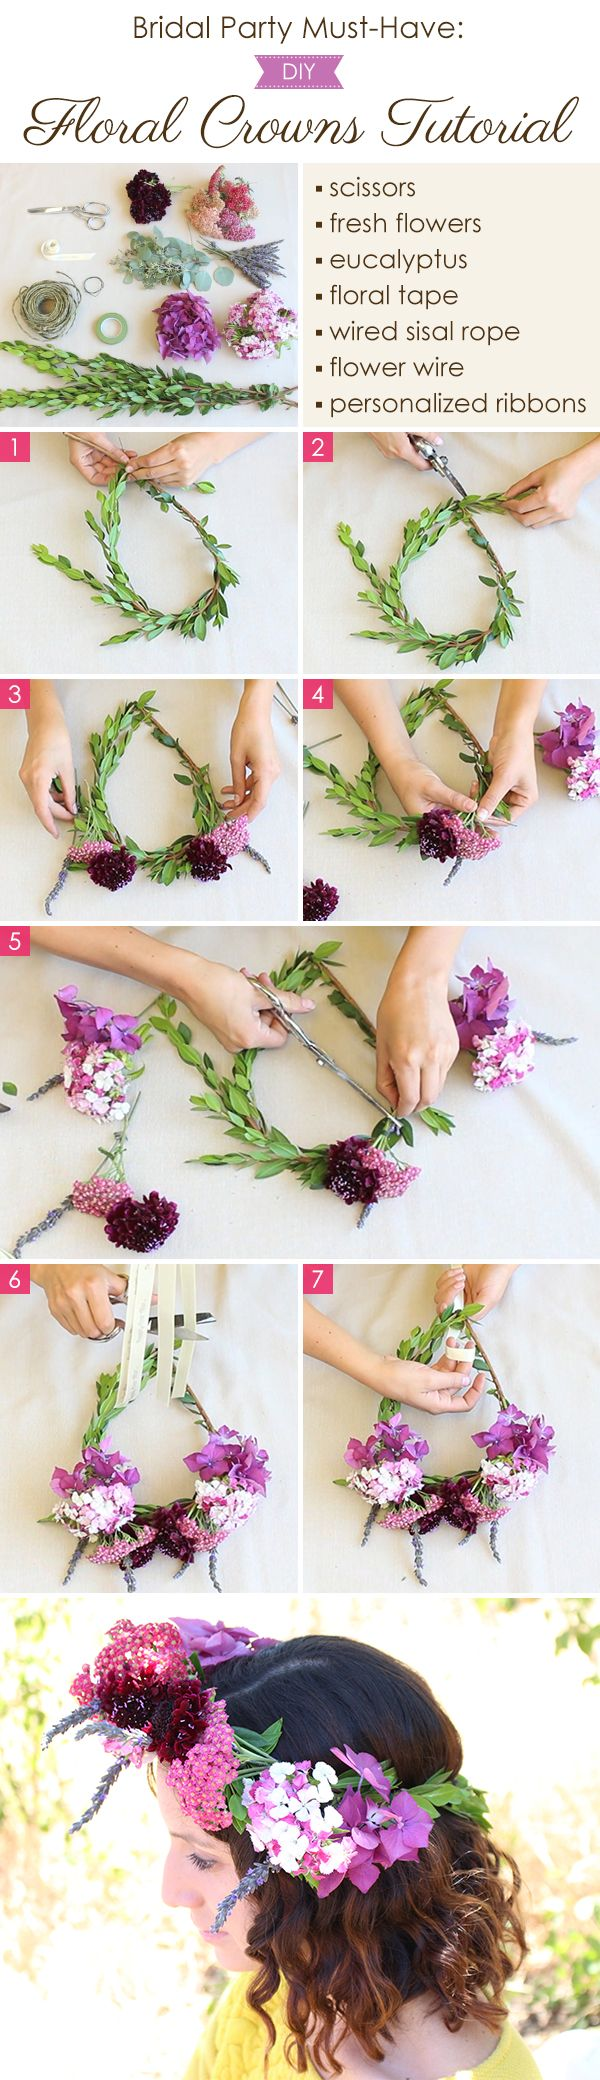 Bridal Party Musthave: Diy Flower Crowns Tutorial By Home Sweet Flowers